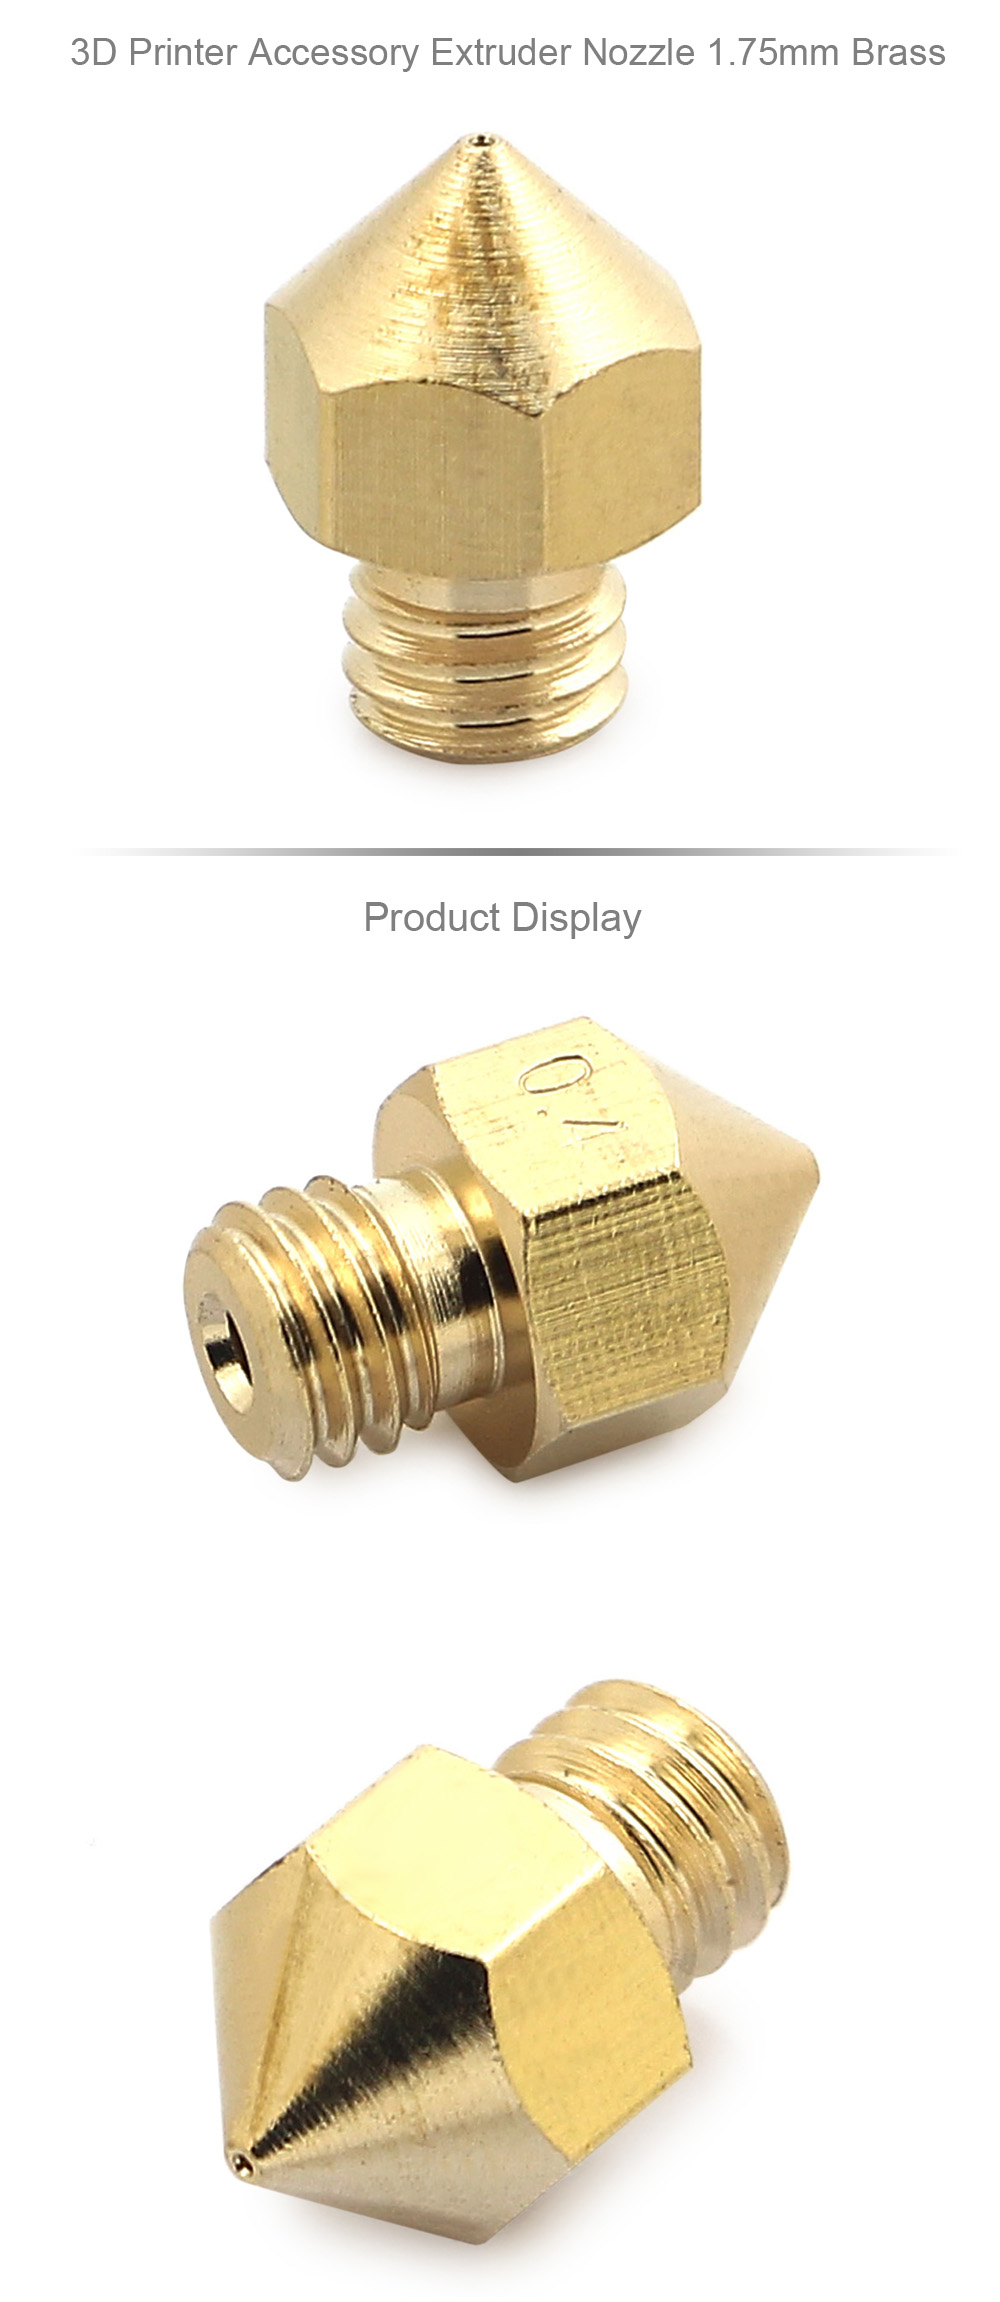 3D Printer Accessory Extruder Nozzle 1.75mm Brass